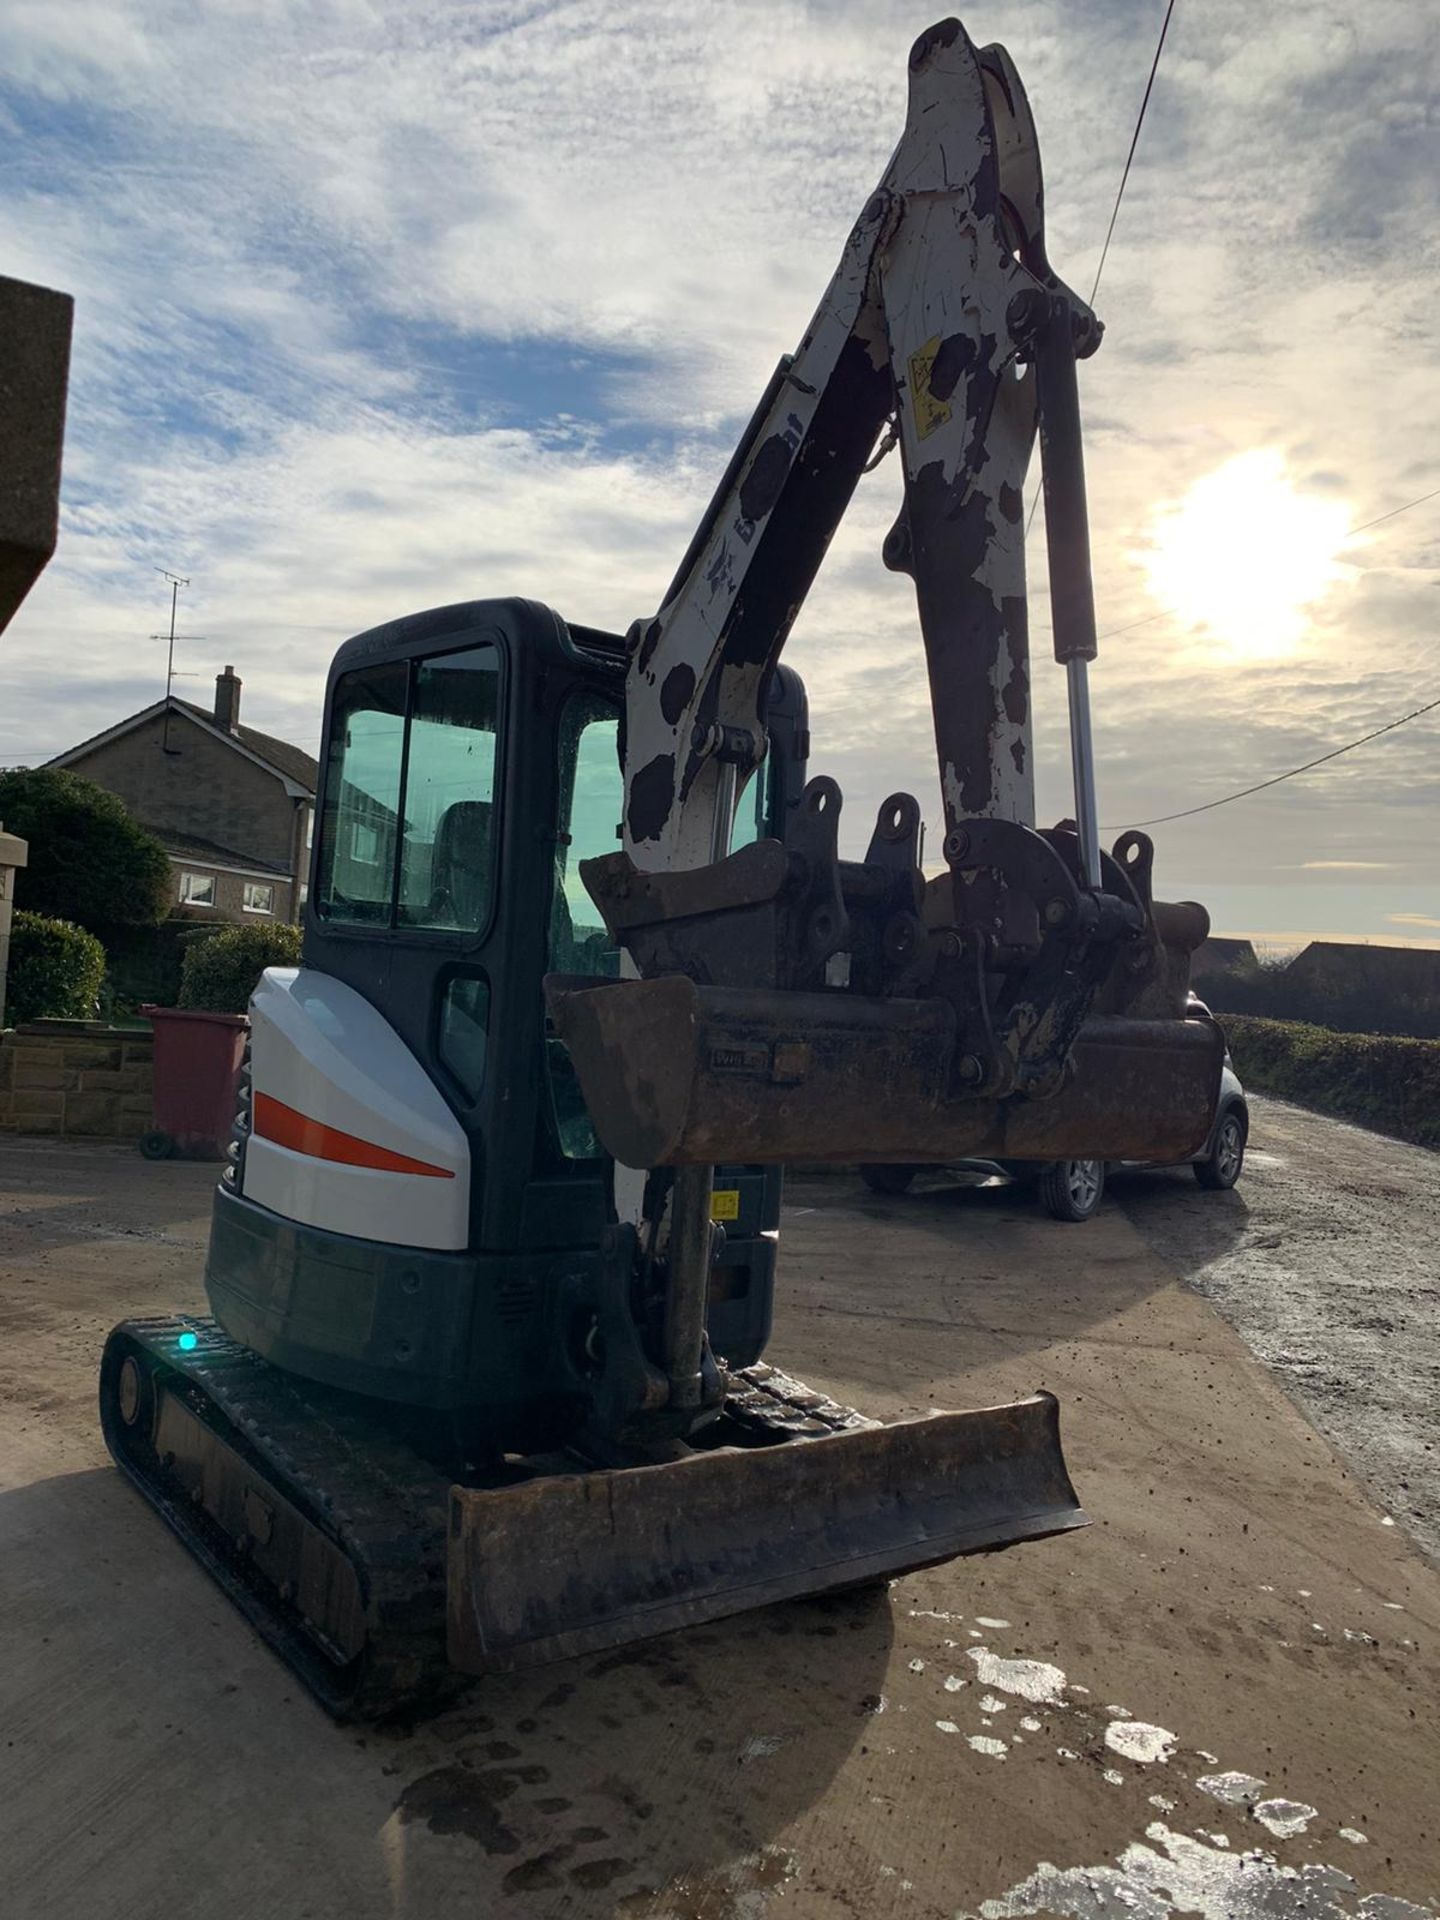 2012 BOBCAT E26 RUBBER TRACKED CRAWLER EXCAVATOR / MINI DIGGER, RUNS, DRIVES AND DIGS, 3 X BUCKETS - Image 4 of 5